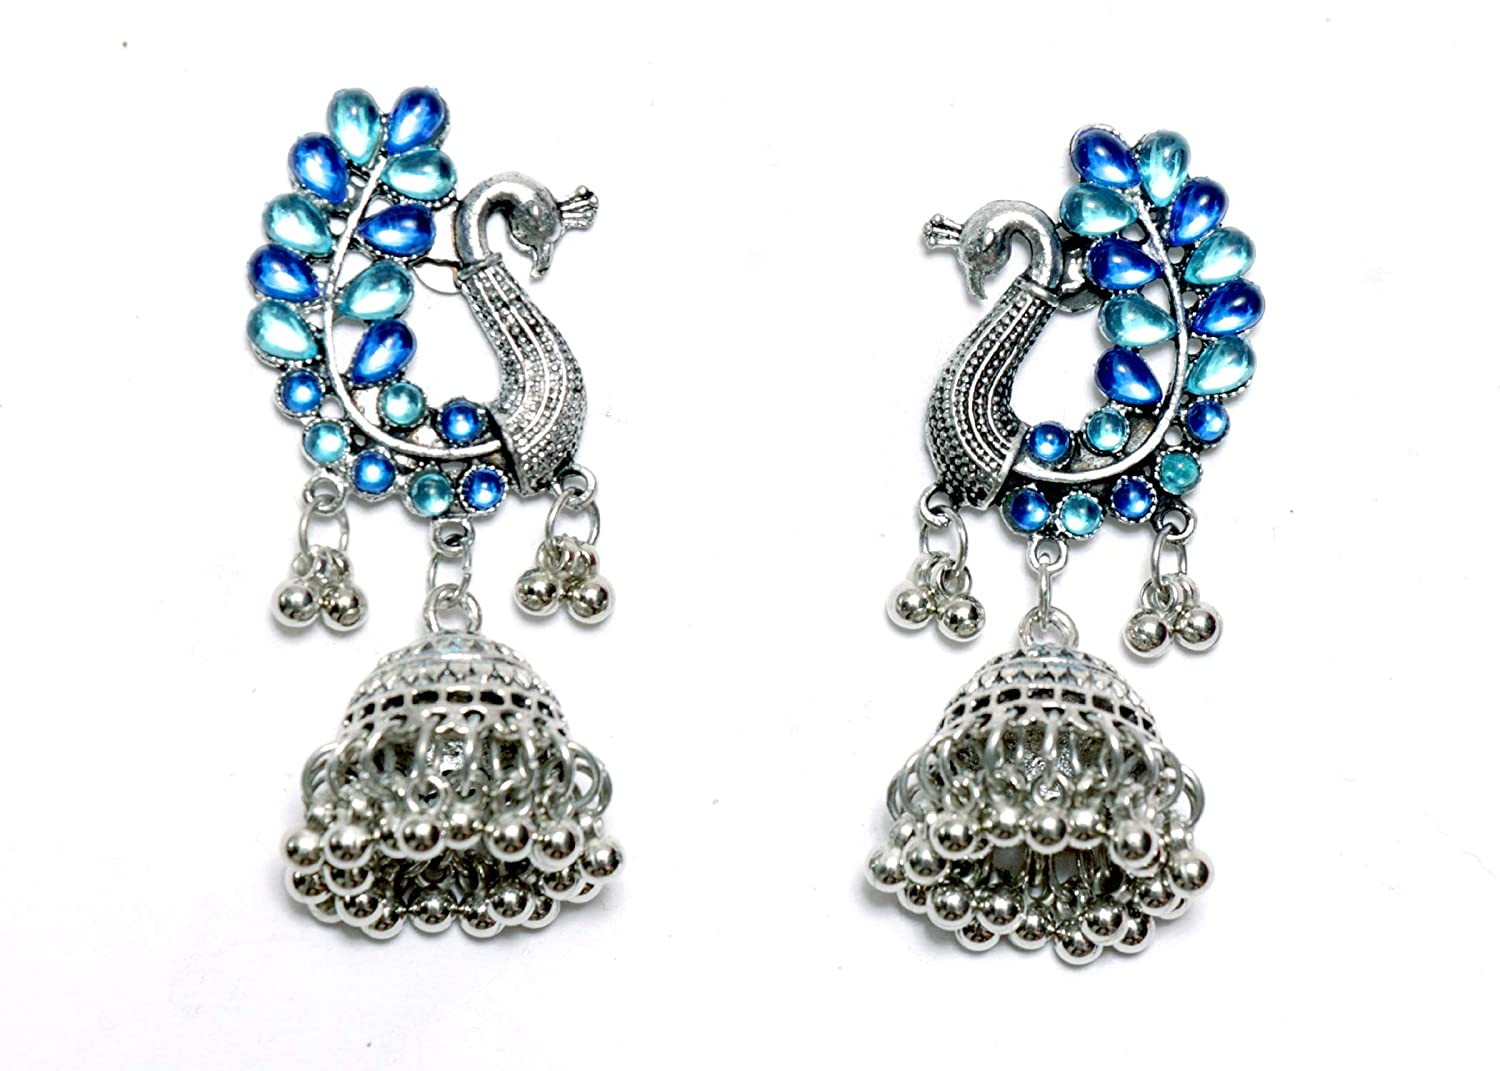 Swan shaped Oxidized Silver Jhumki Earings Indian Traditional Jewellery for Stylish Women and Girls by SP Jewels